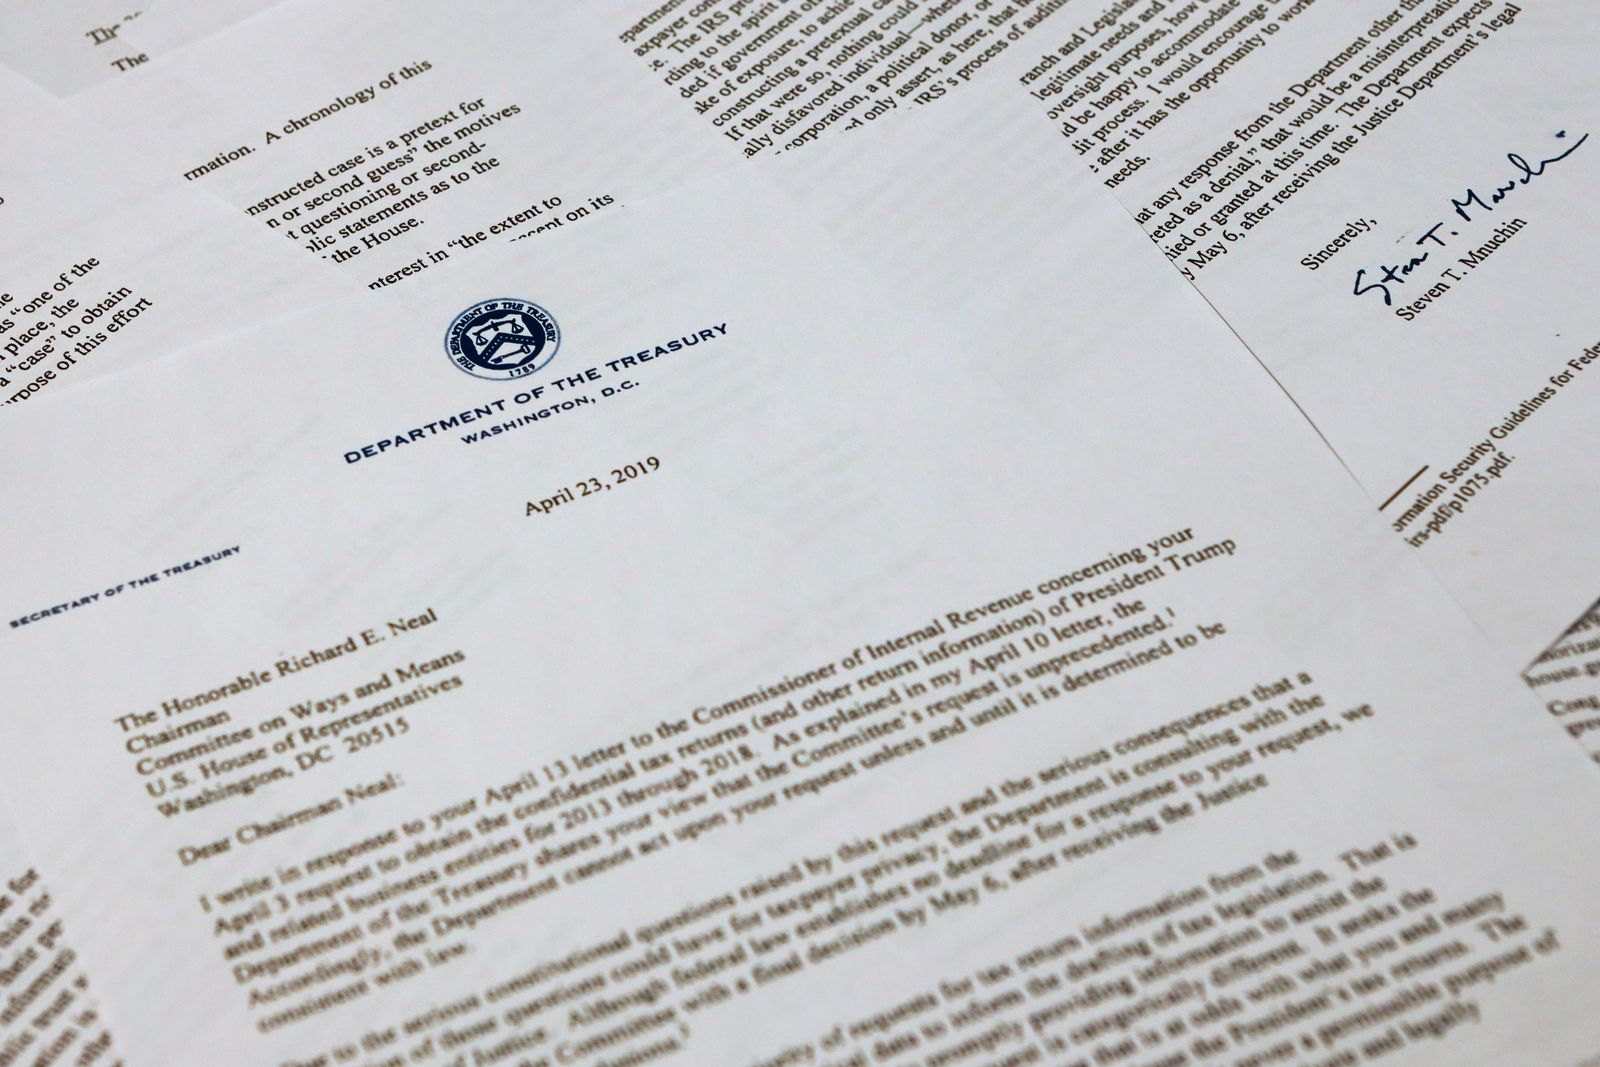 The letter from Treasury Secretary Steven Mnuchin to House Ways and Mean chairman Richard Neal of Mass., is photographed Tuesday, April 23, 2019, in Washington. (AP Photo/Jon Elswick)